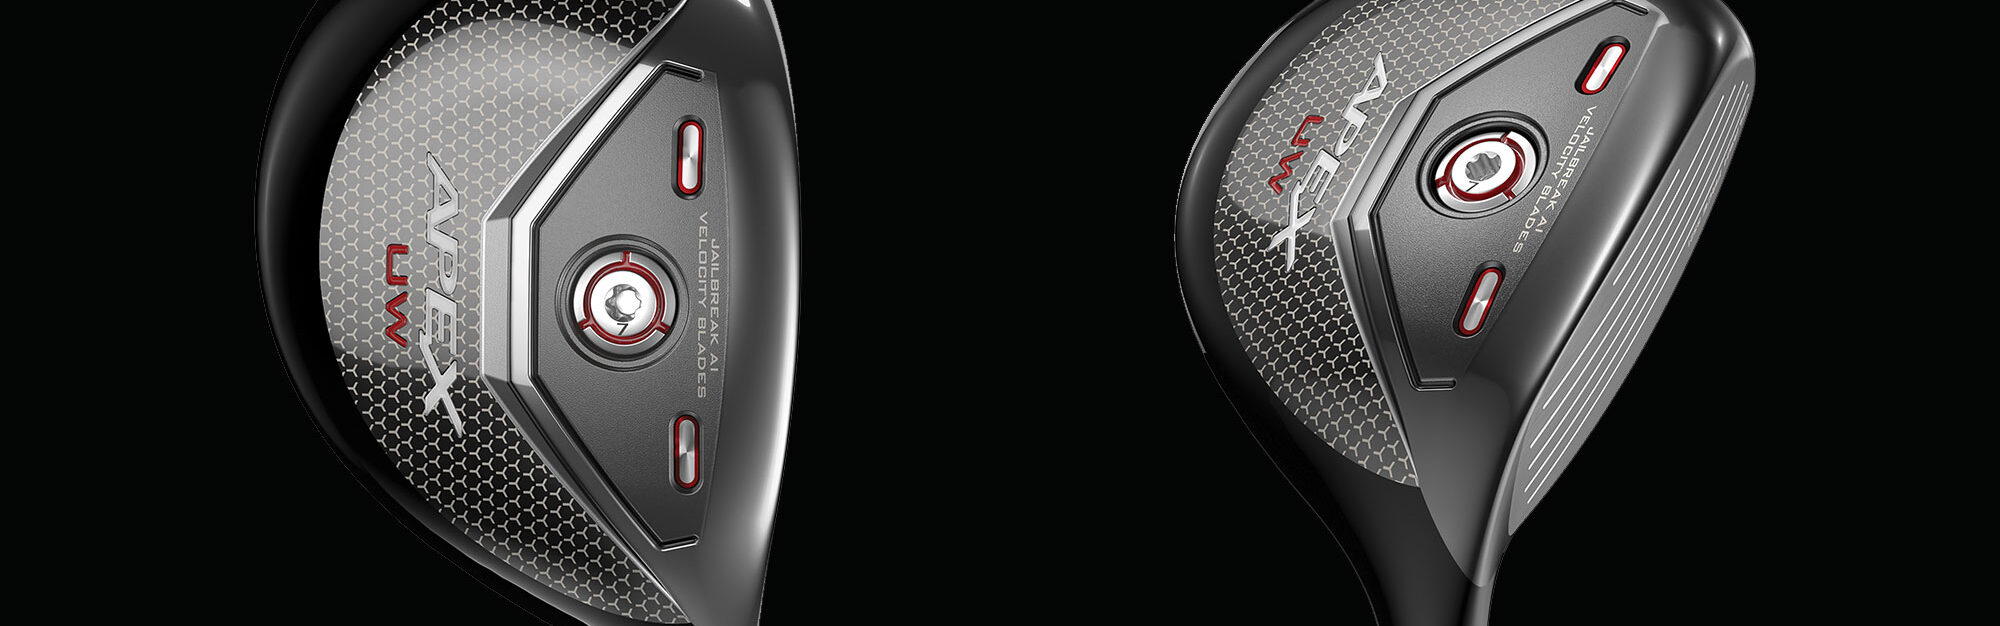 A cross between a fairway wood and a hybrid? Say hello to Callaway's new utility wood